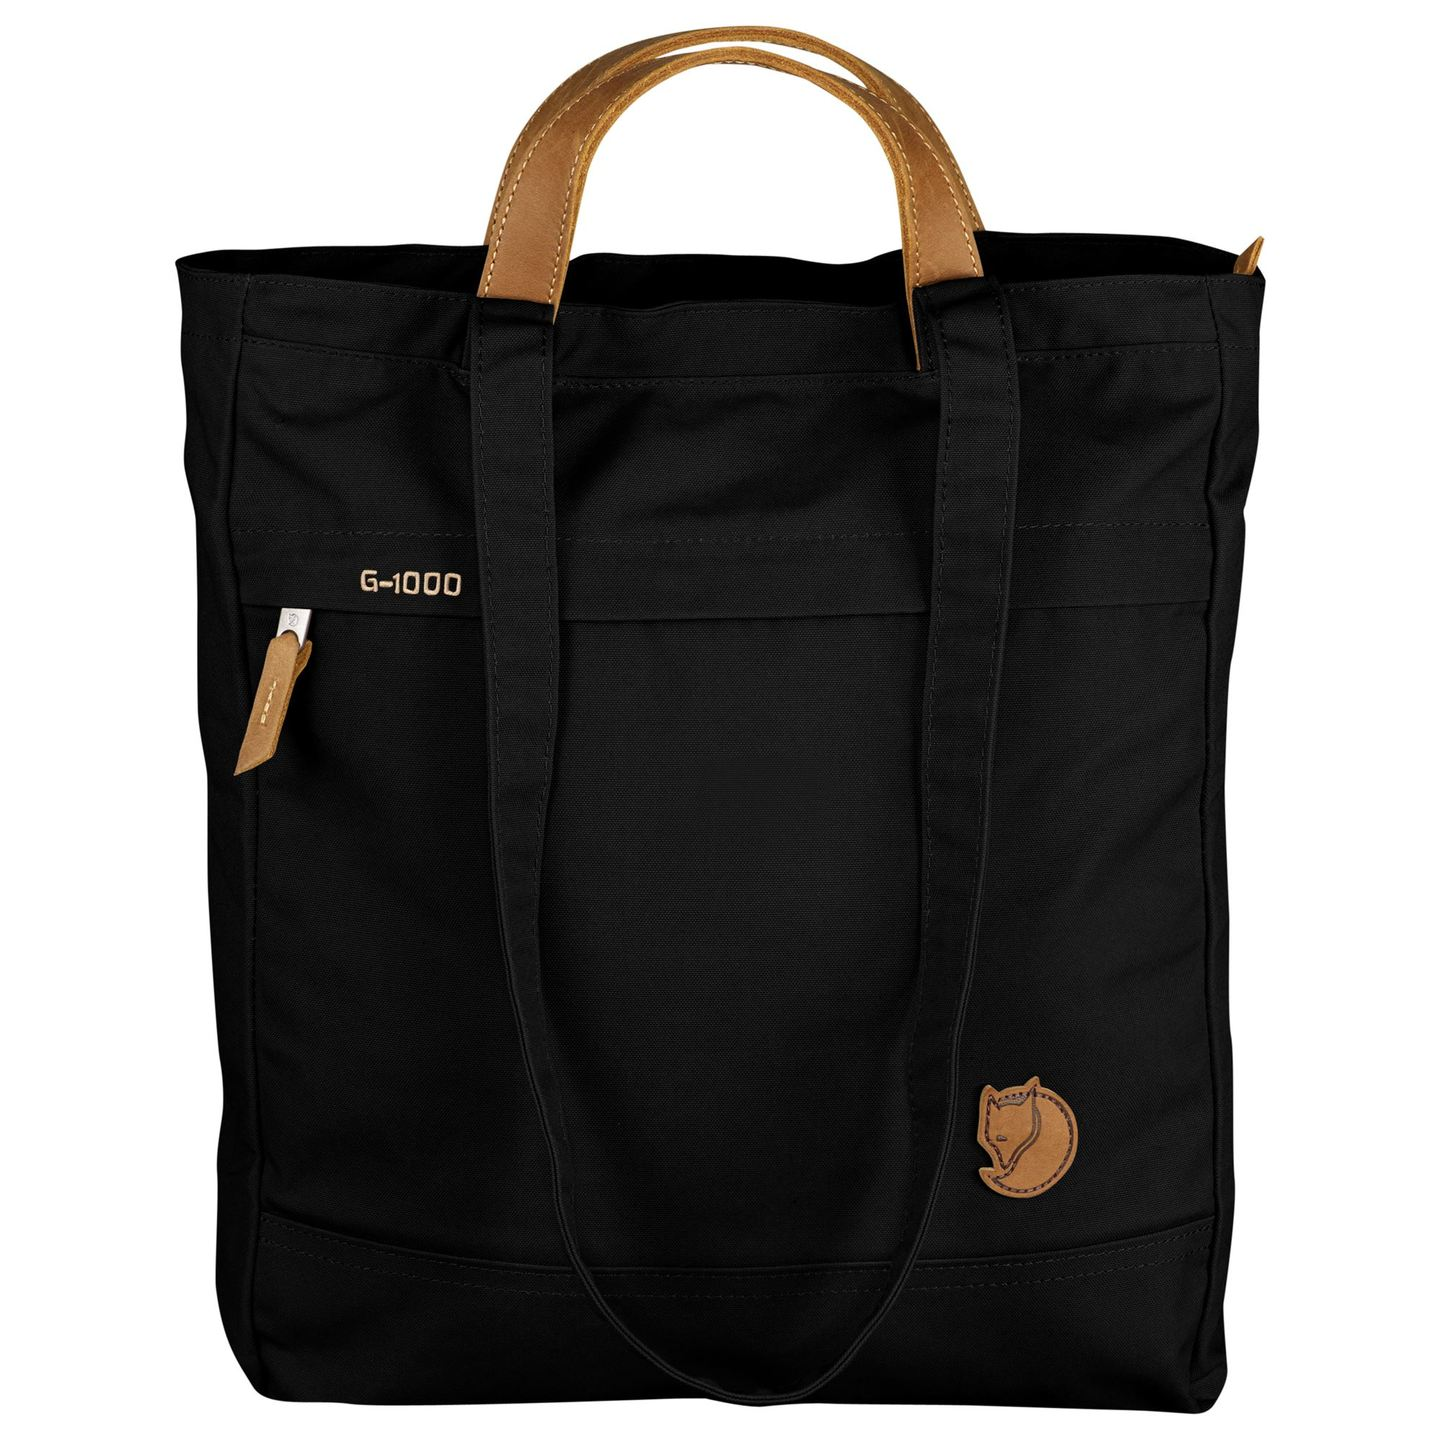 Fjallraven Totepack No.1 - Black - Find Your Feet Australia Hobart Launceston Tasmania